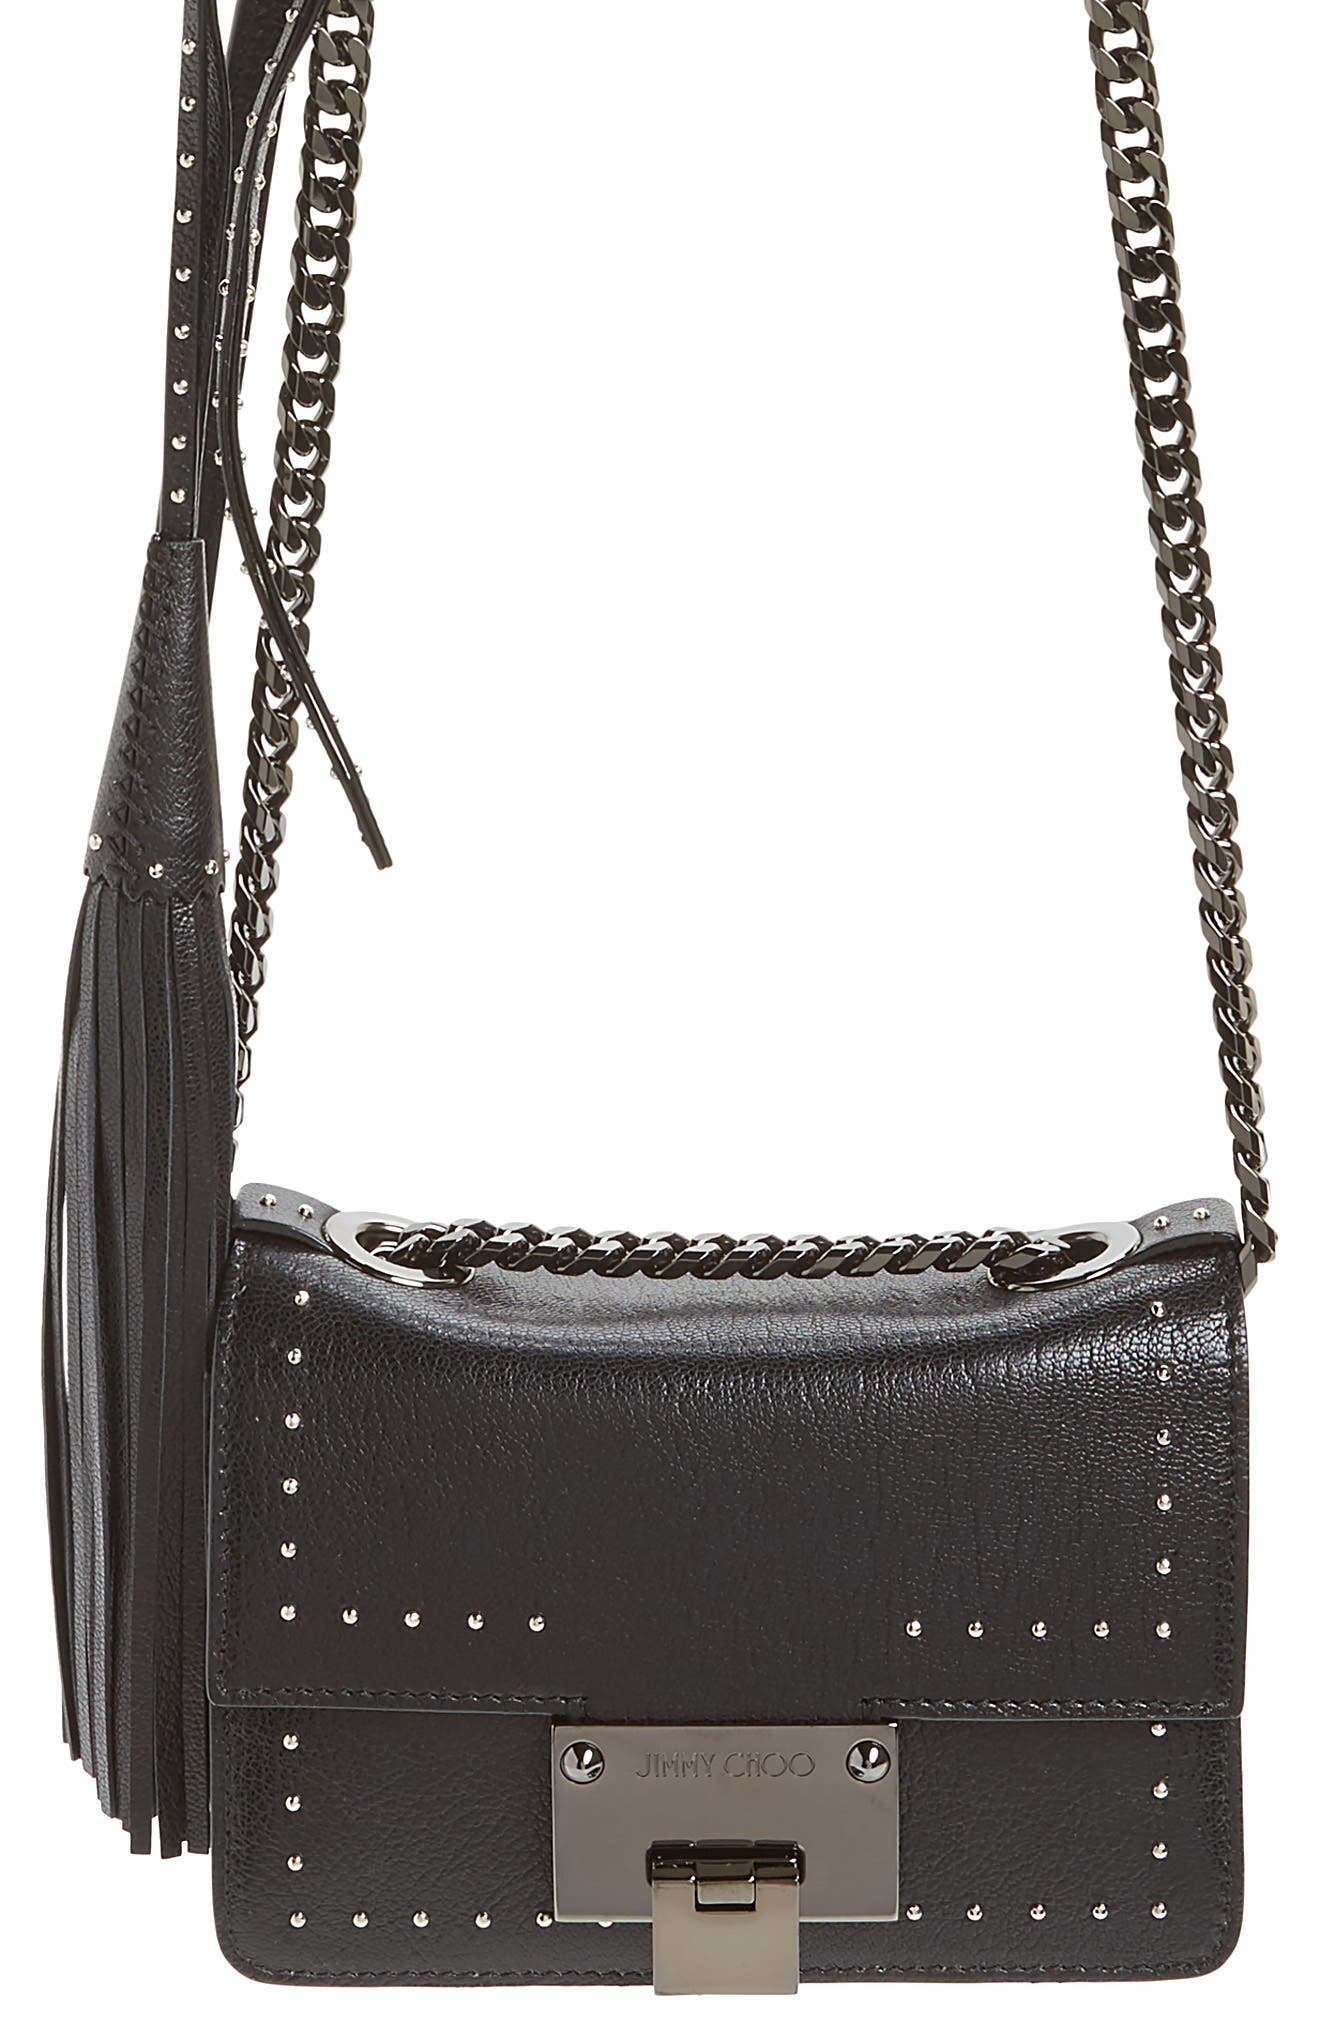 Mini Rebel Studded Leather Shoulder Bag,                             Alternate thumbnail 7, color,                             001